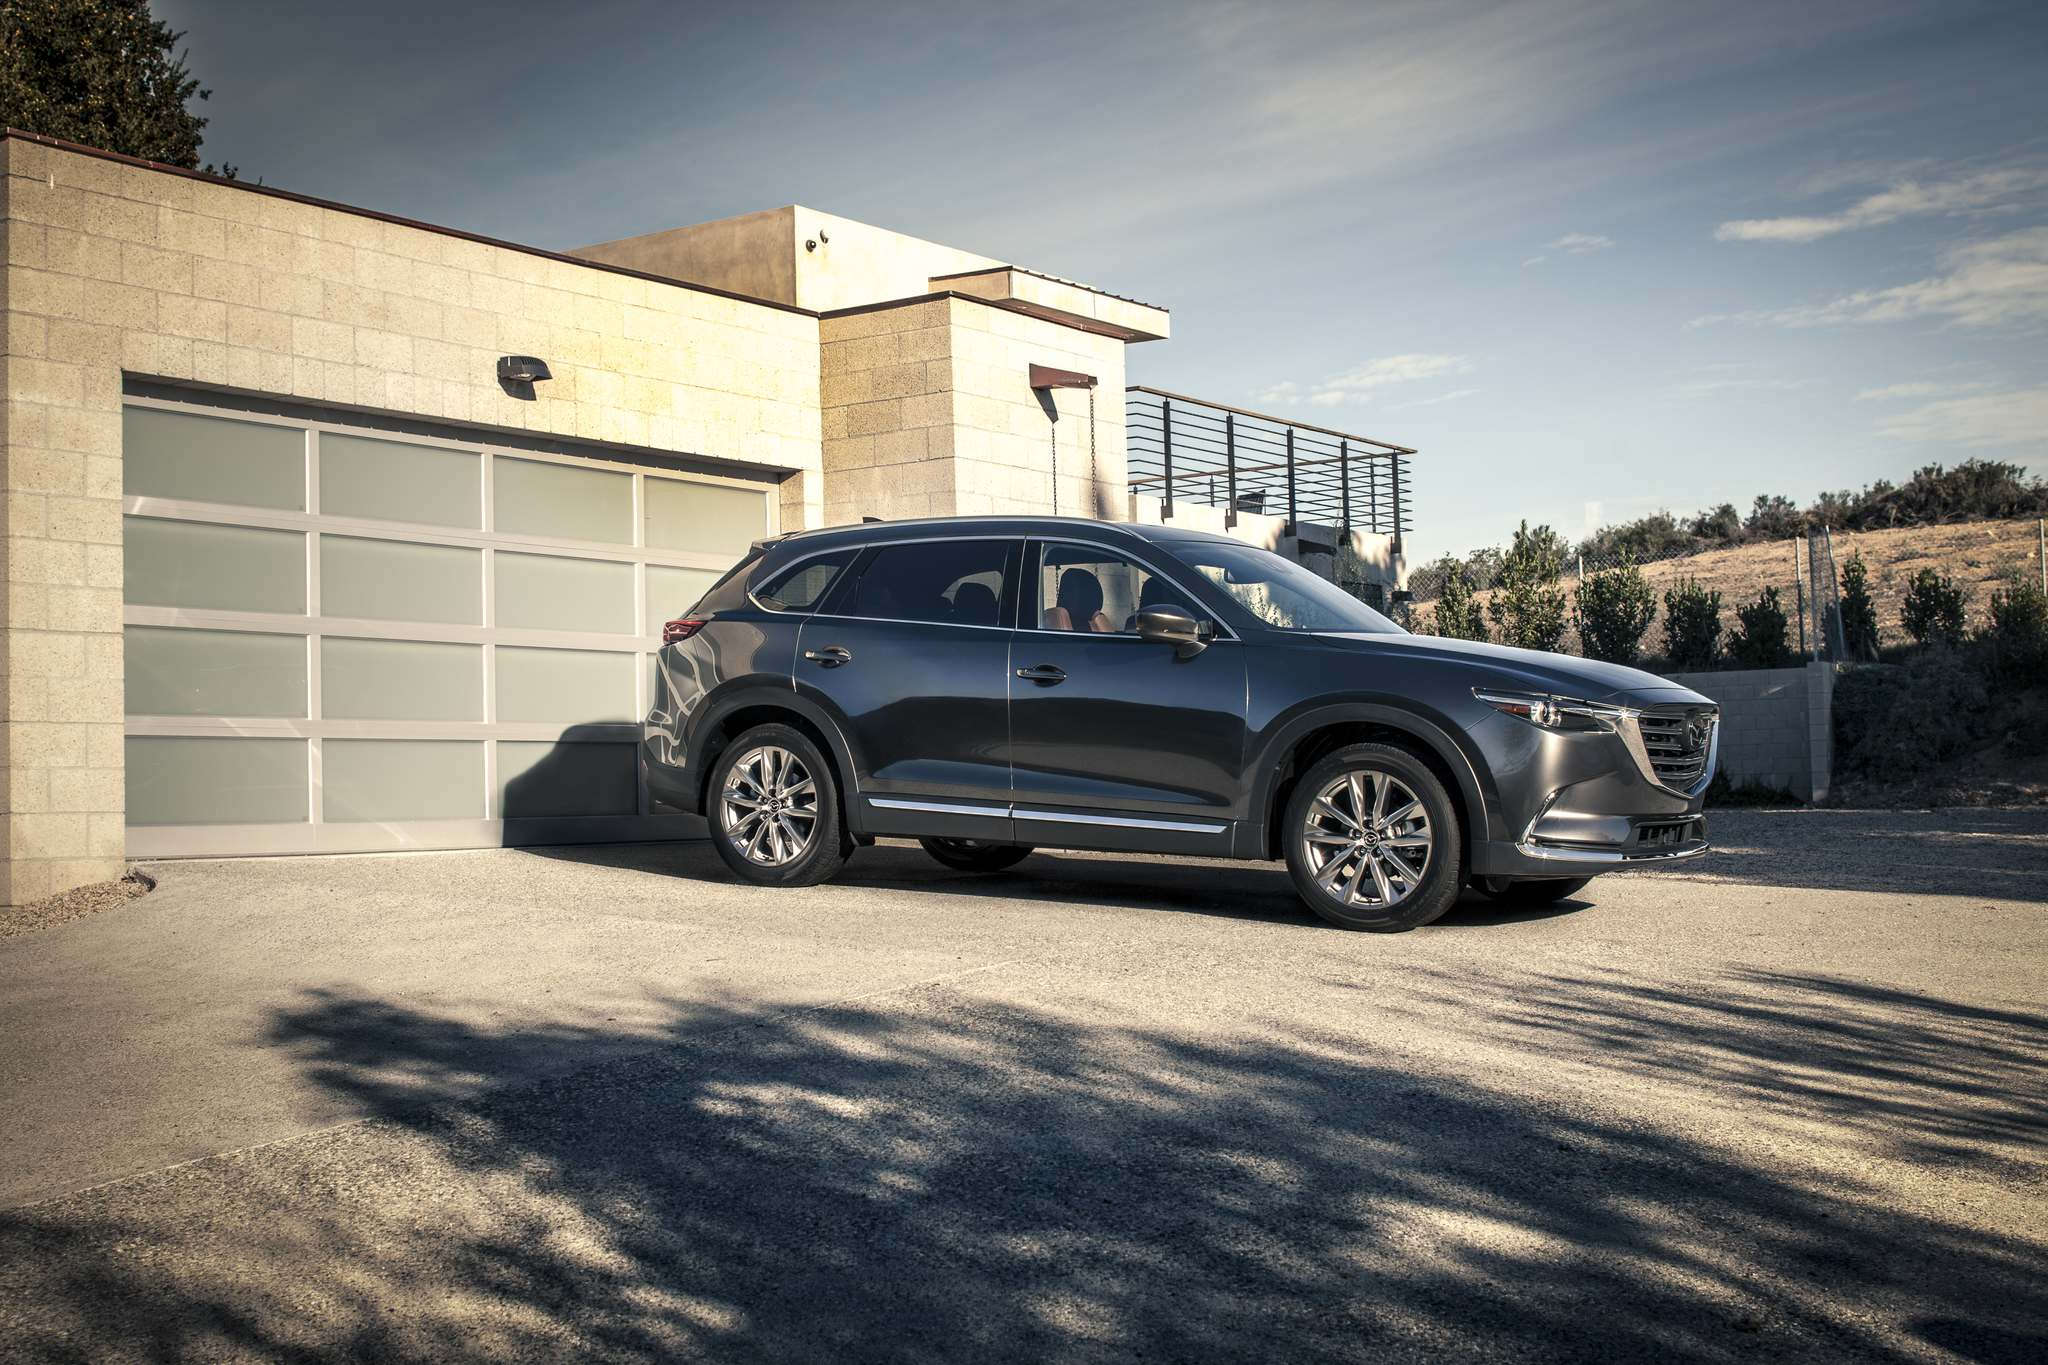 As a seven-seater, the CX-9 is spacious for passengers, while leaving a high cargo capacity.